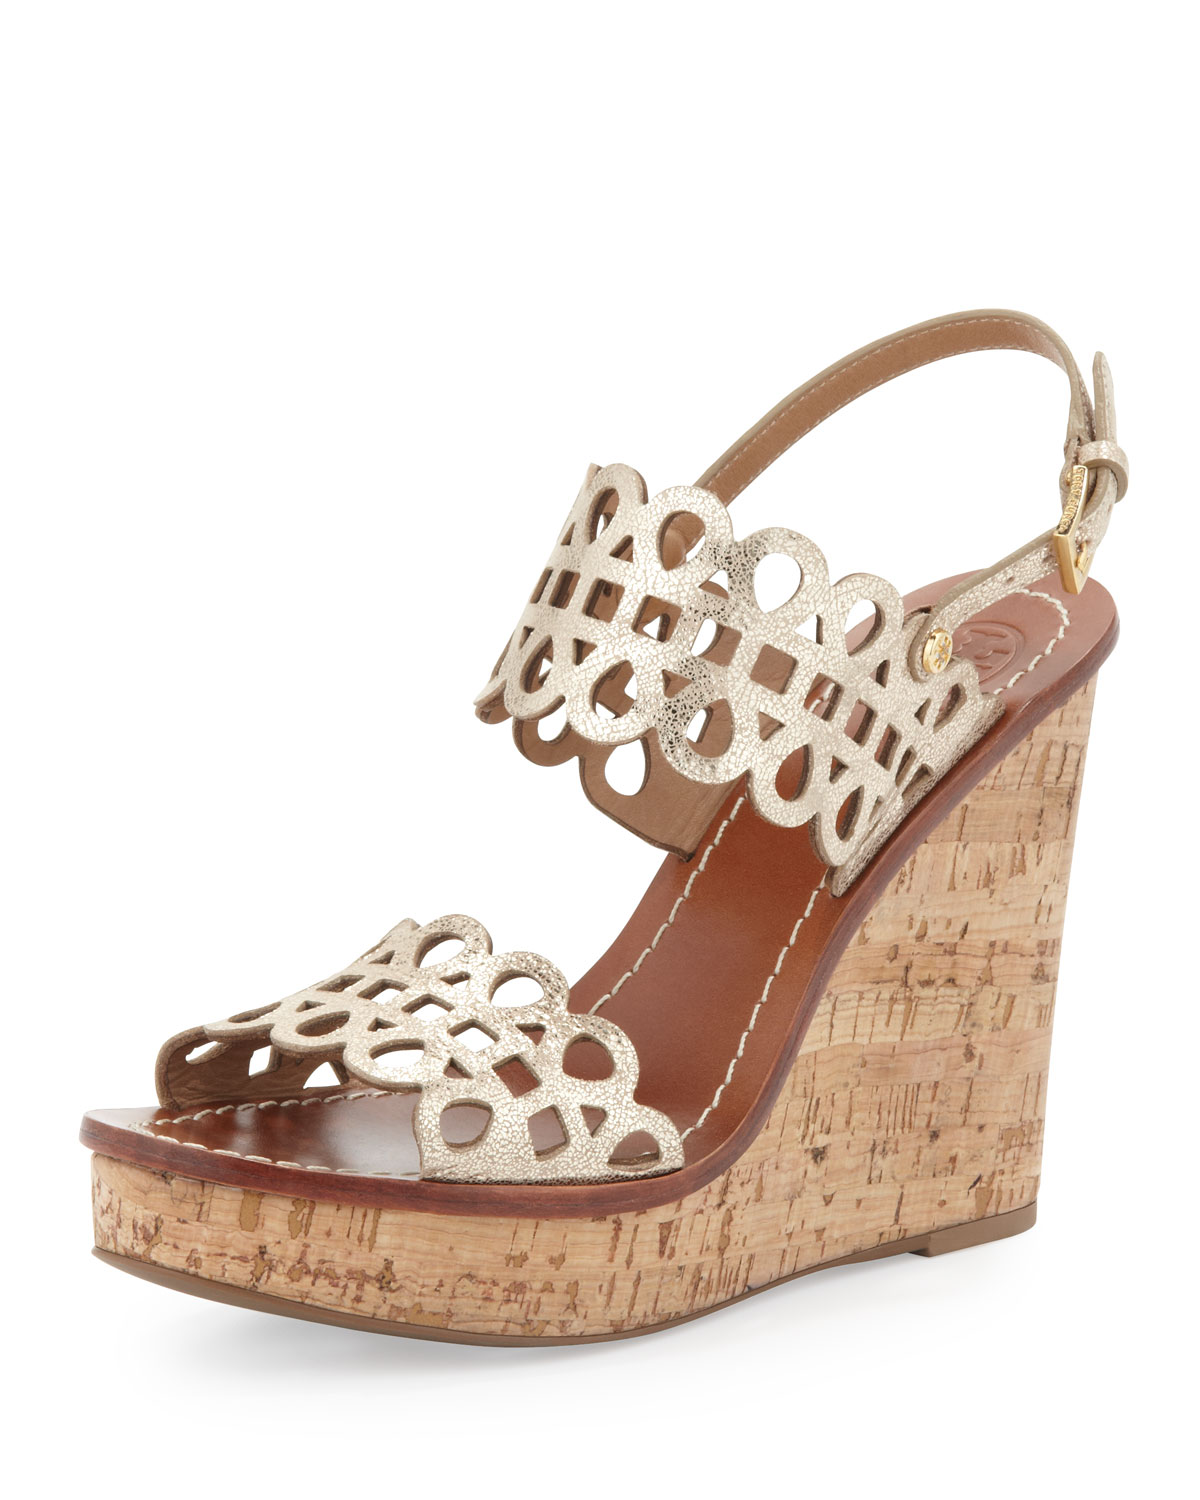 Laser Cut Gold Platinum: Tory Burch Nori Lasercut Wedge Sandal Platinum In Gold